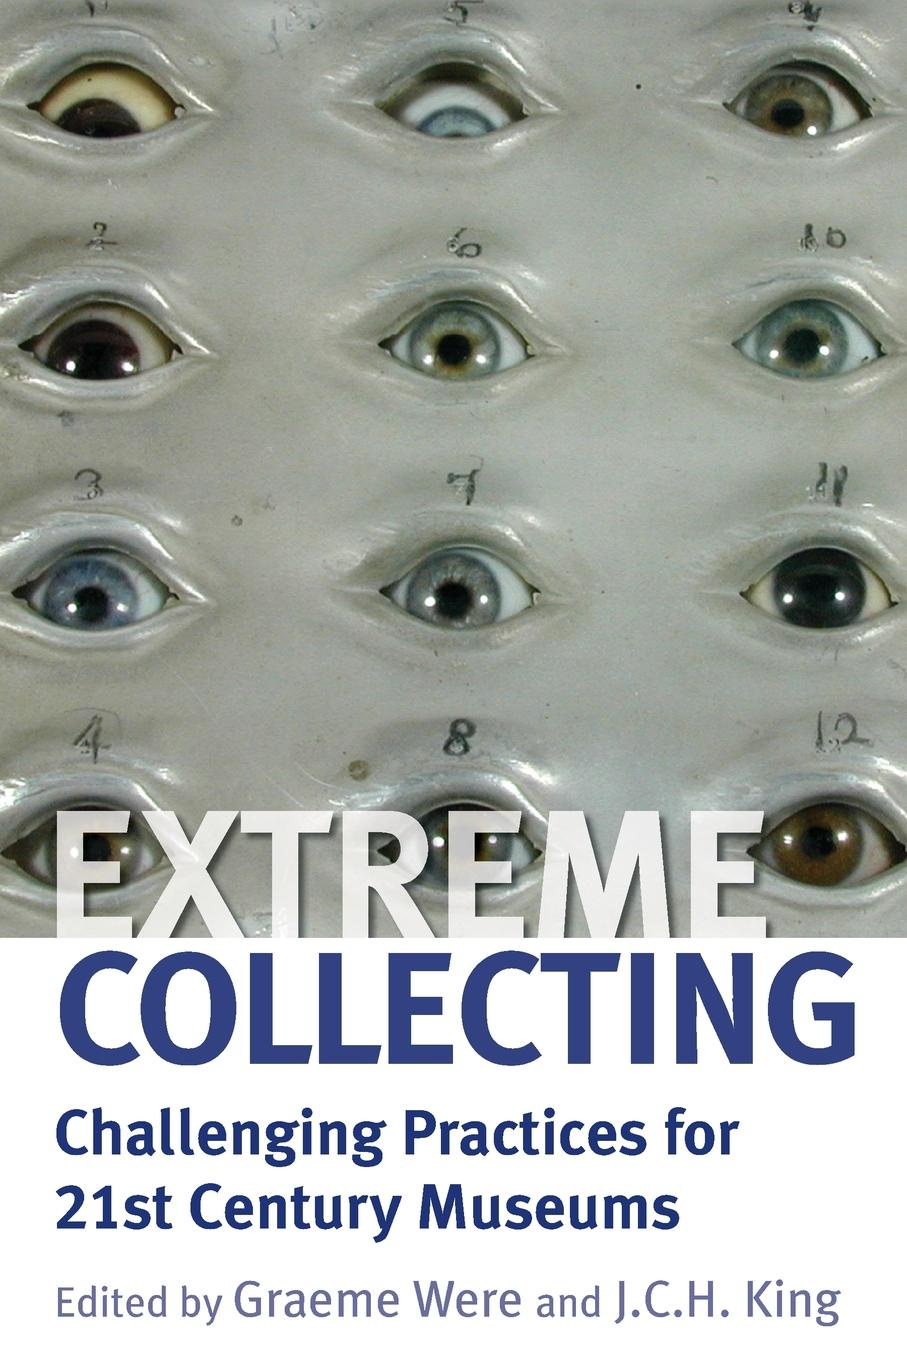 Extreme Collecting. Challenging Practices for 21st Century Museums